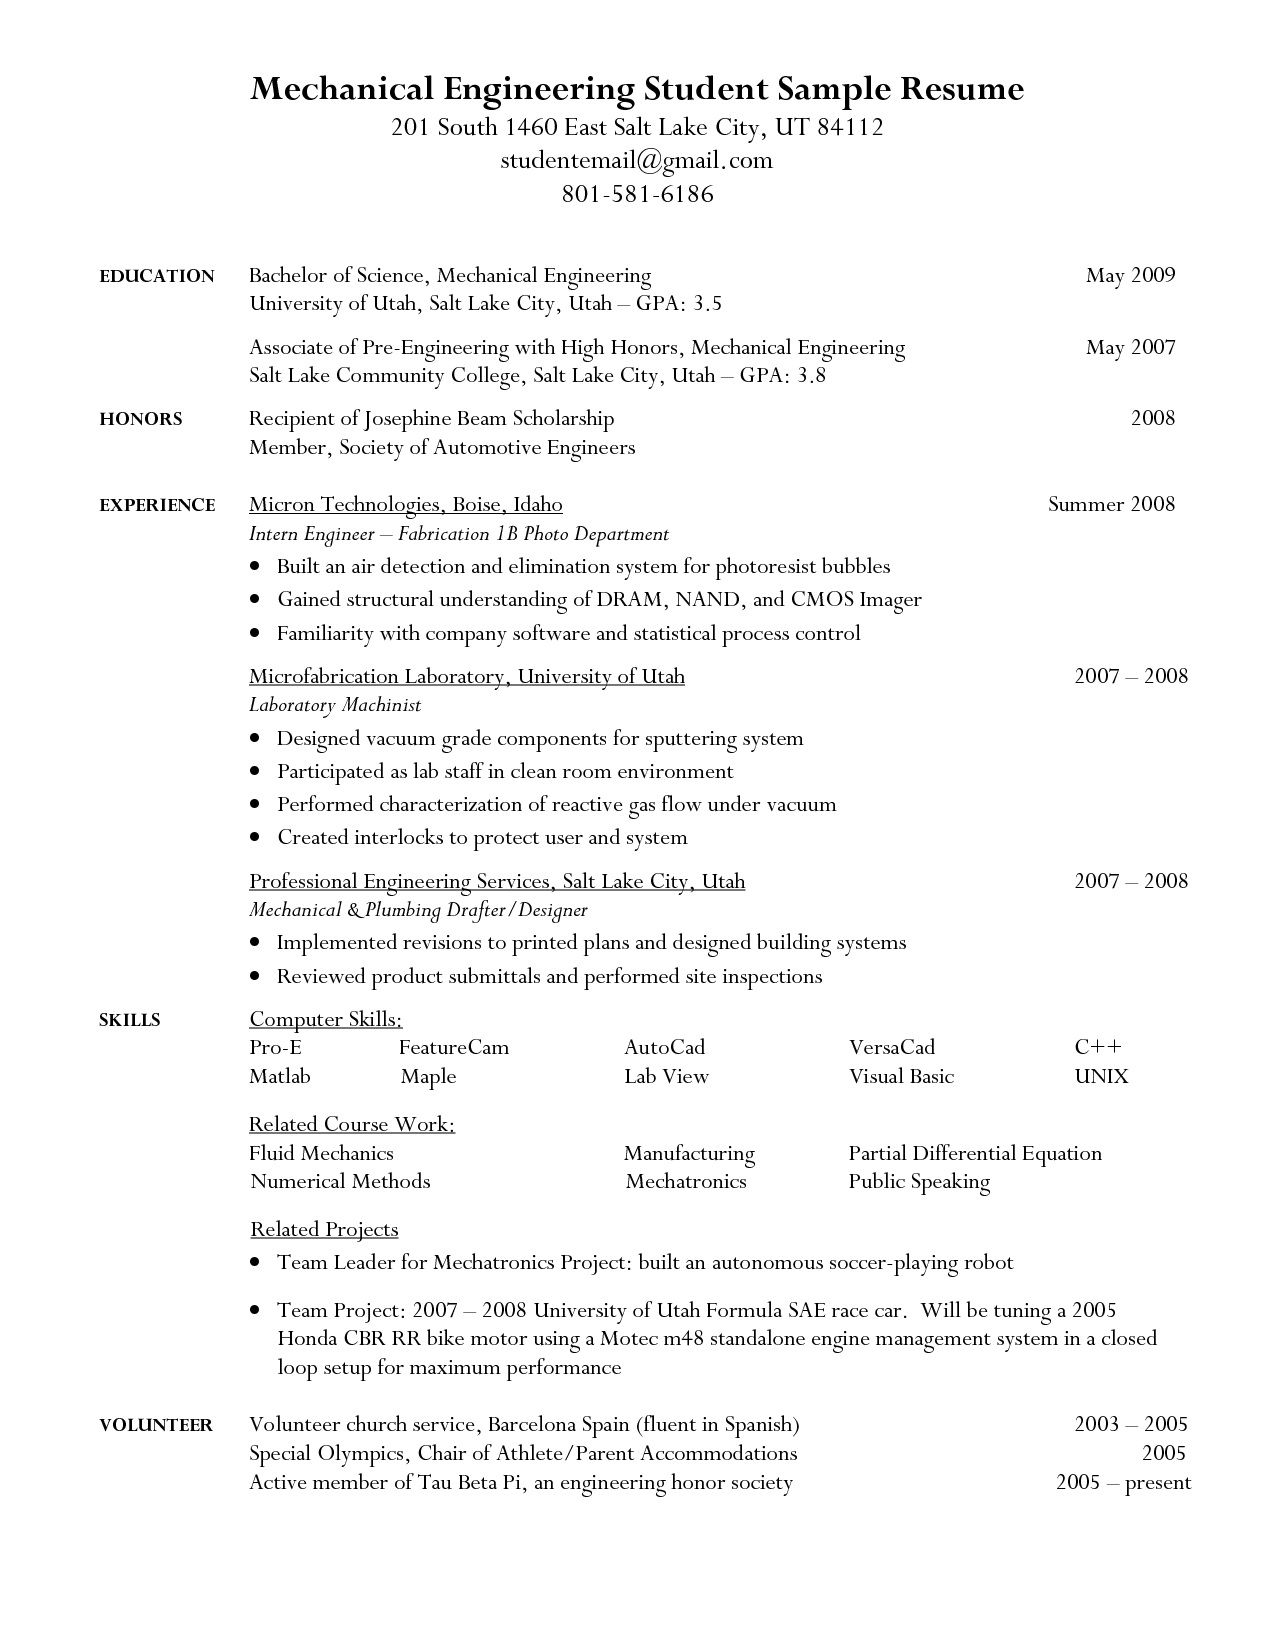 College Student Resume Objective Sample - http://jobresumesample ...